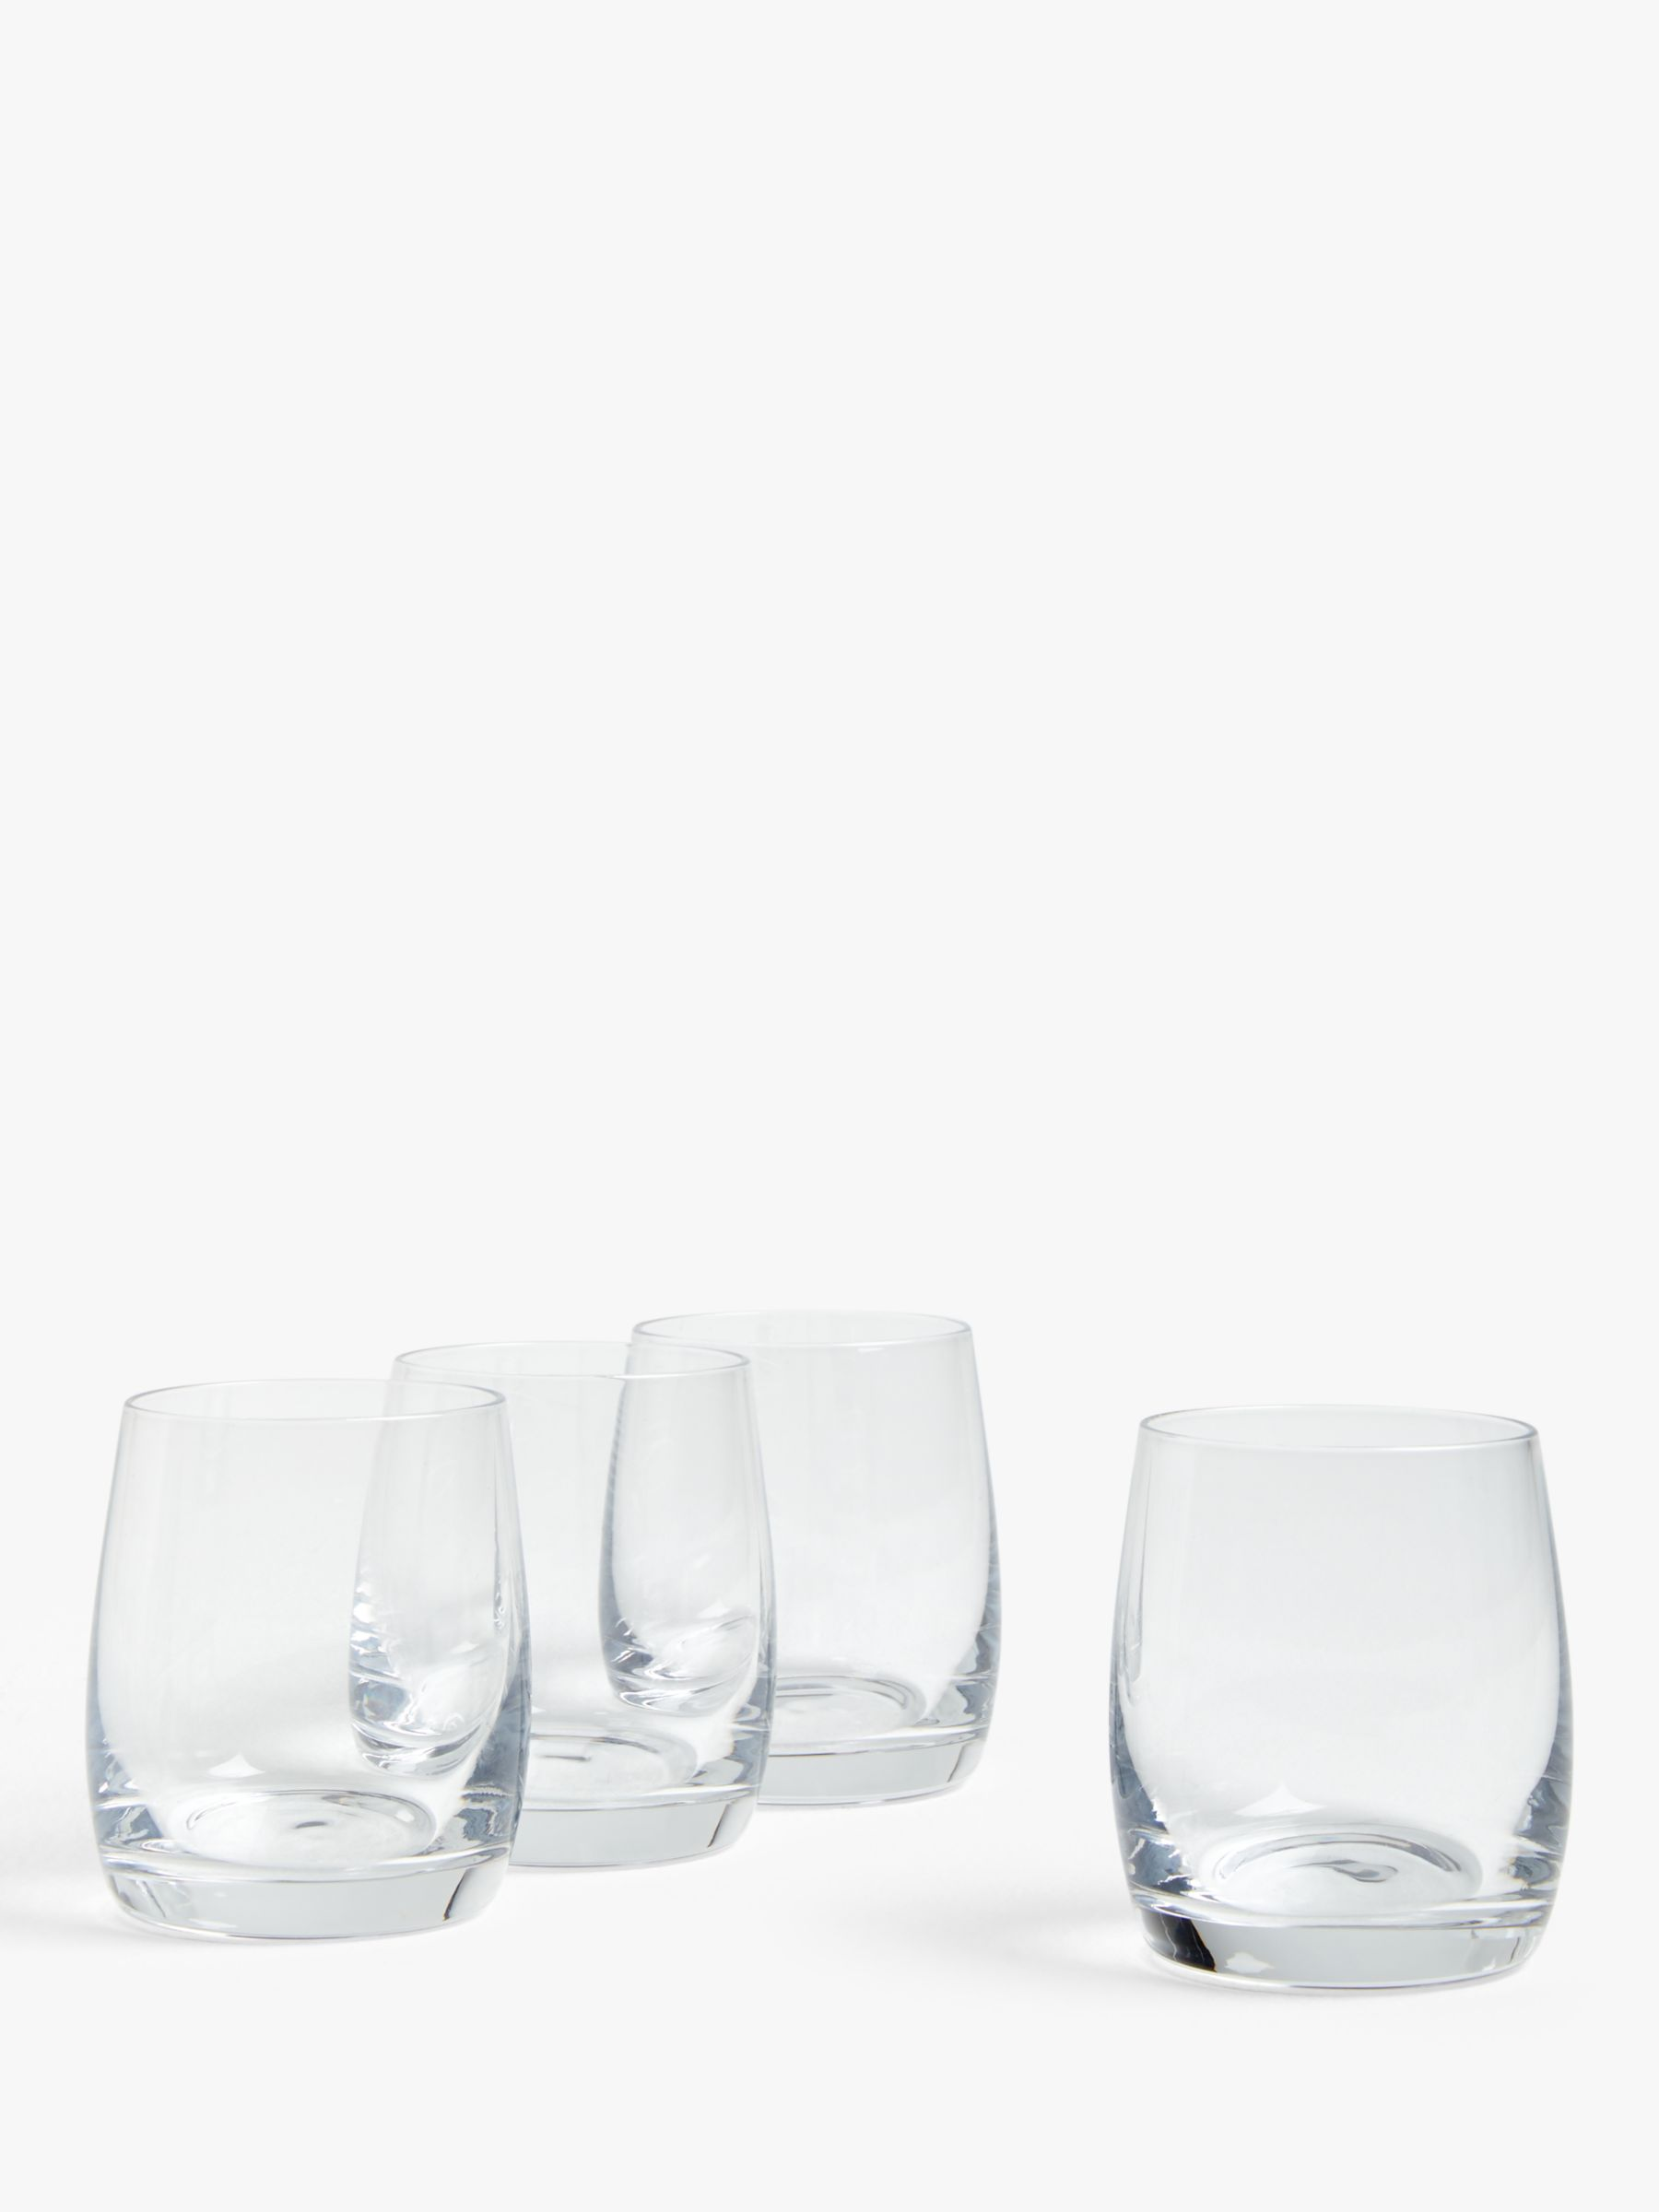 House by John Lewis House by John Lewis Drink Tumblers, Clear, 250ml, Set of 4